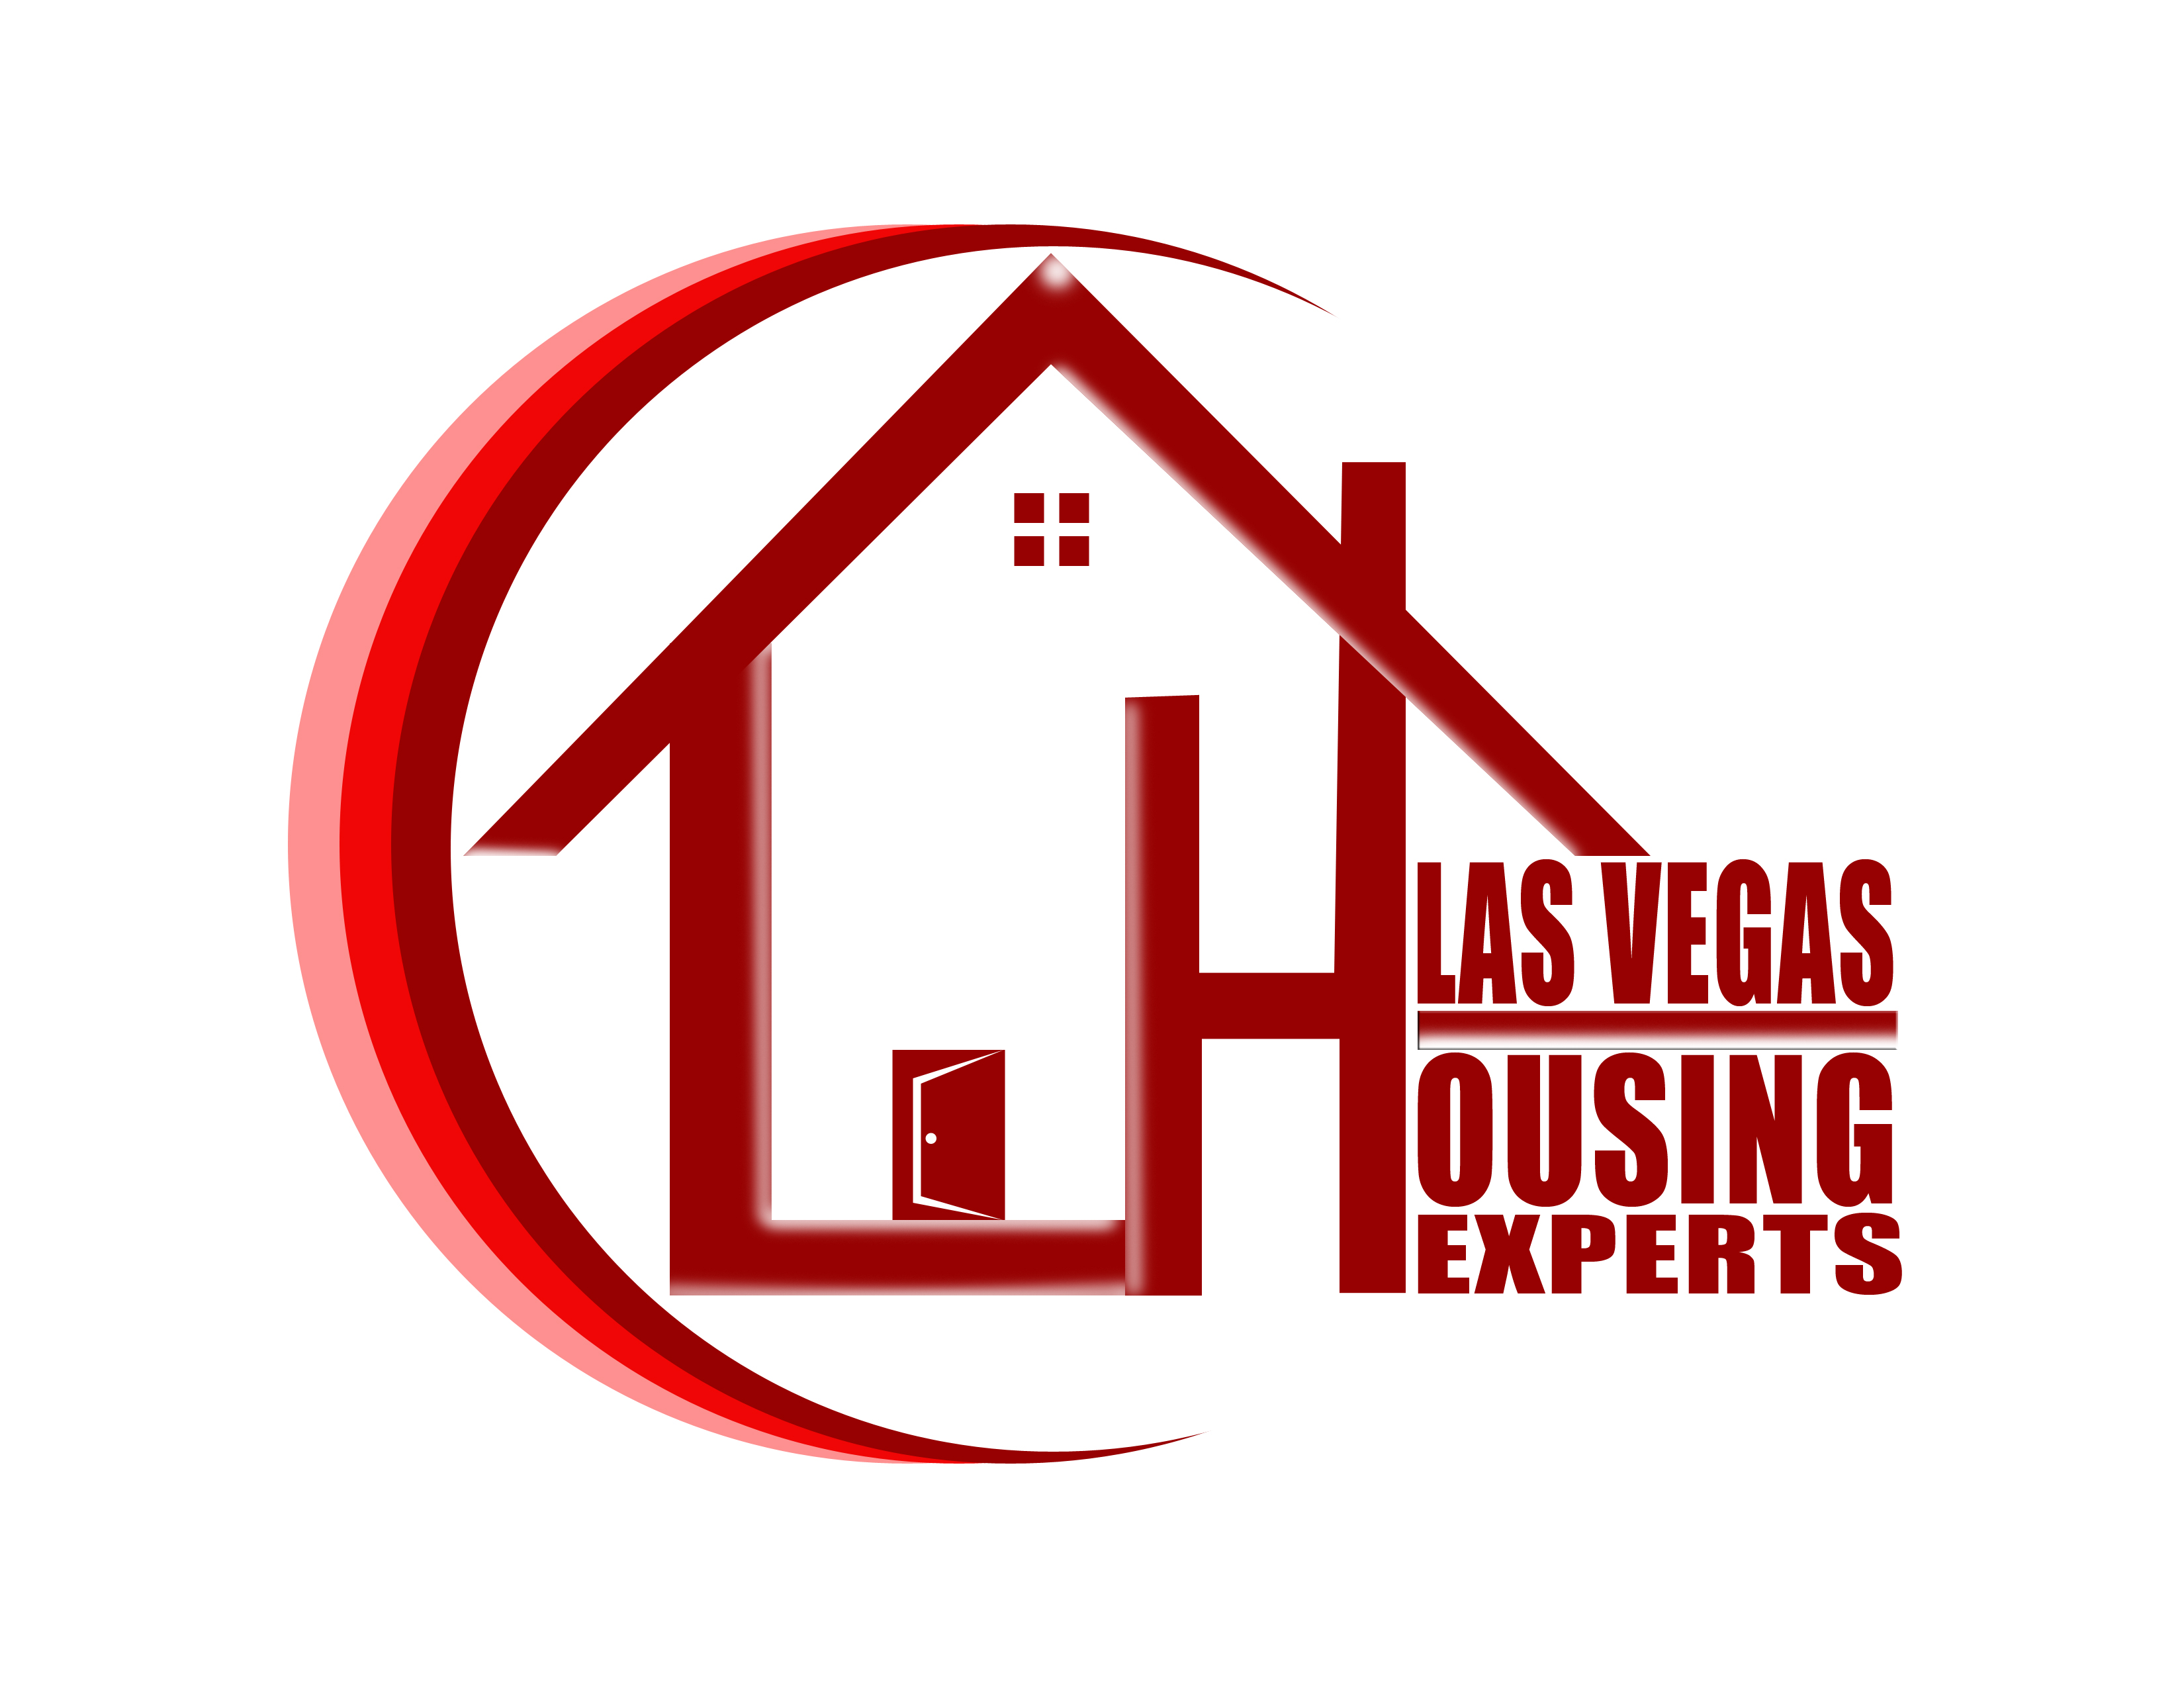 Logo Design by Jo Cres Jao - Entry No. 72 in the Logo Design Contest Las Vegas Housing Experts Logo Design.